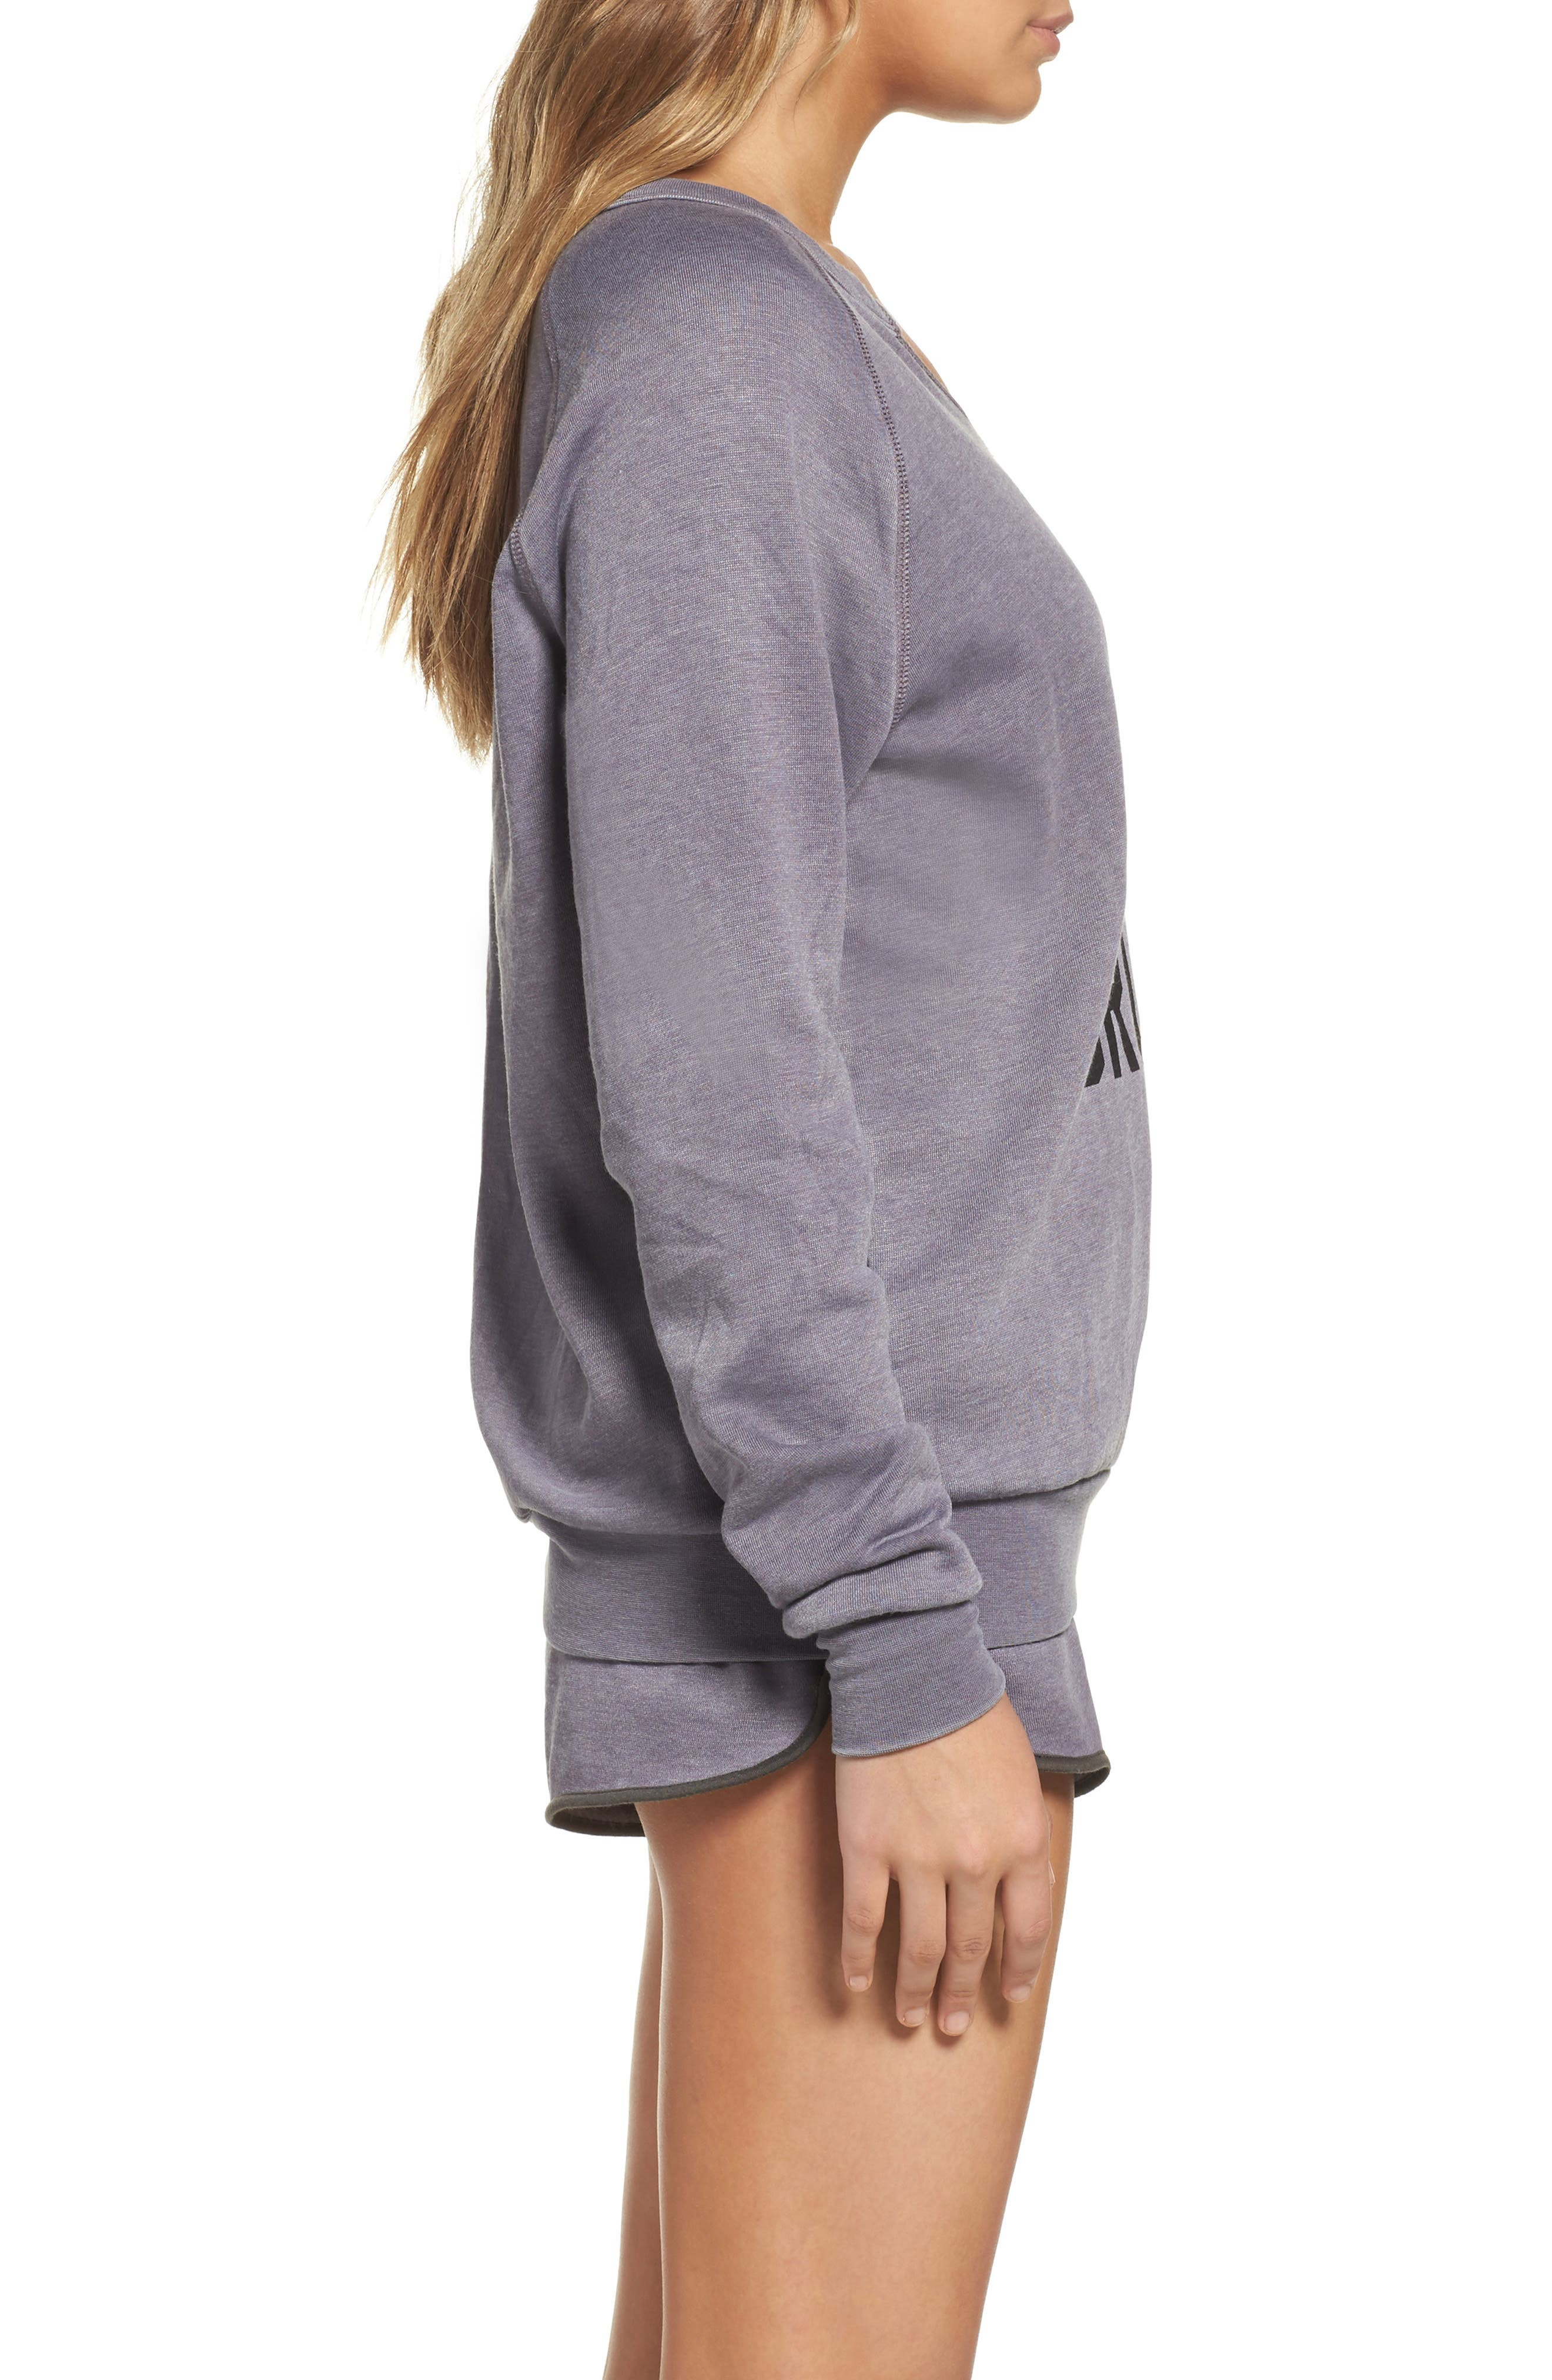 THE LAUNDRY ROOM,                             And Then Brunch Sweatshirt,                             Alternate thumbnail 3, color,                             020